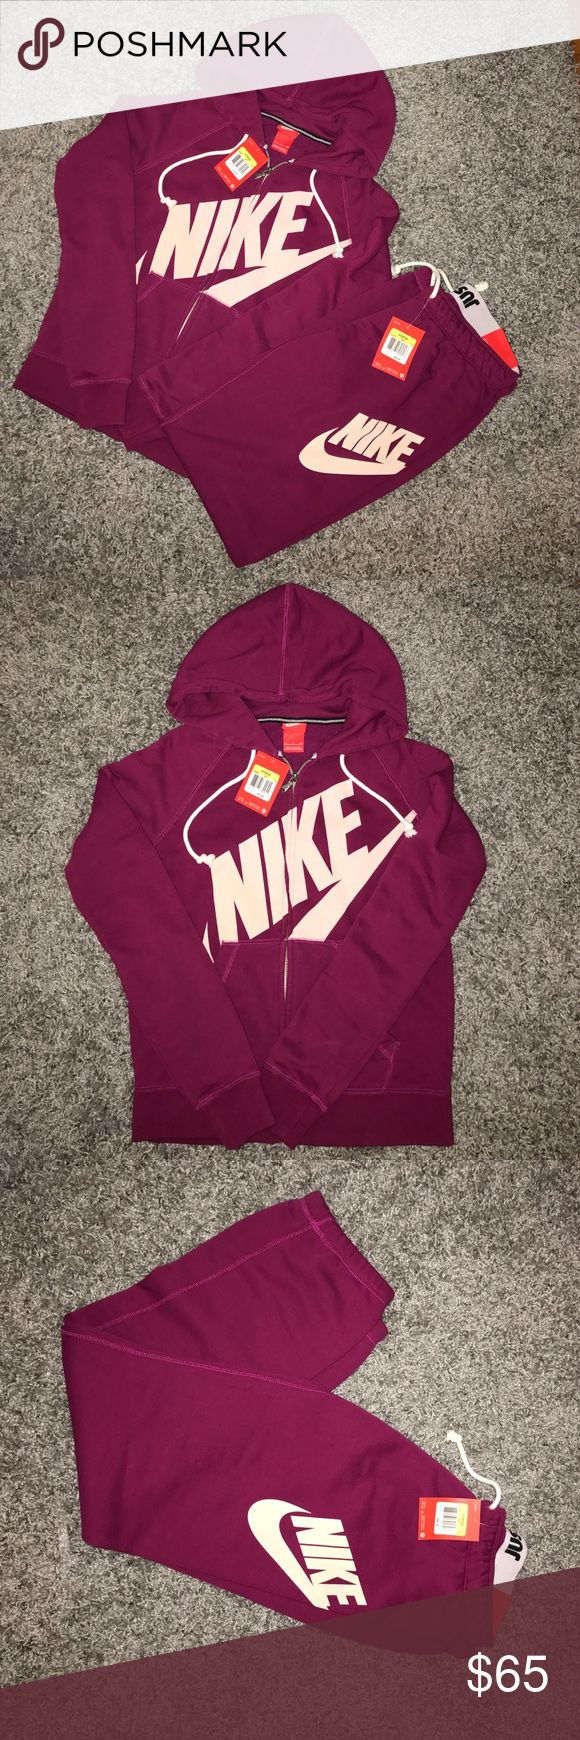 Nike sweat suit Maroon 2 piece Nike sweatsuit. Zip up hoodies bottoms are elastic jaw string waist with ankle synching. Hoodies is $70 and bottoms are $50 retail. NWT. All reasonable offers considered Nike Pants Track Pants & Joggers